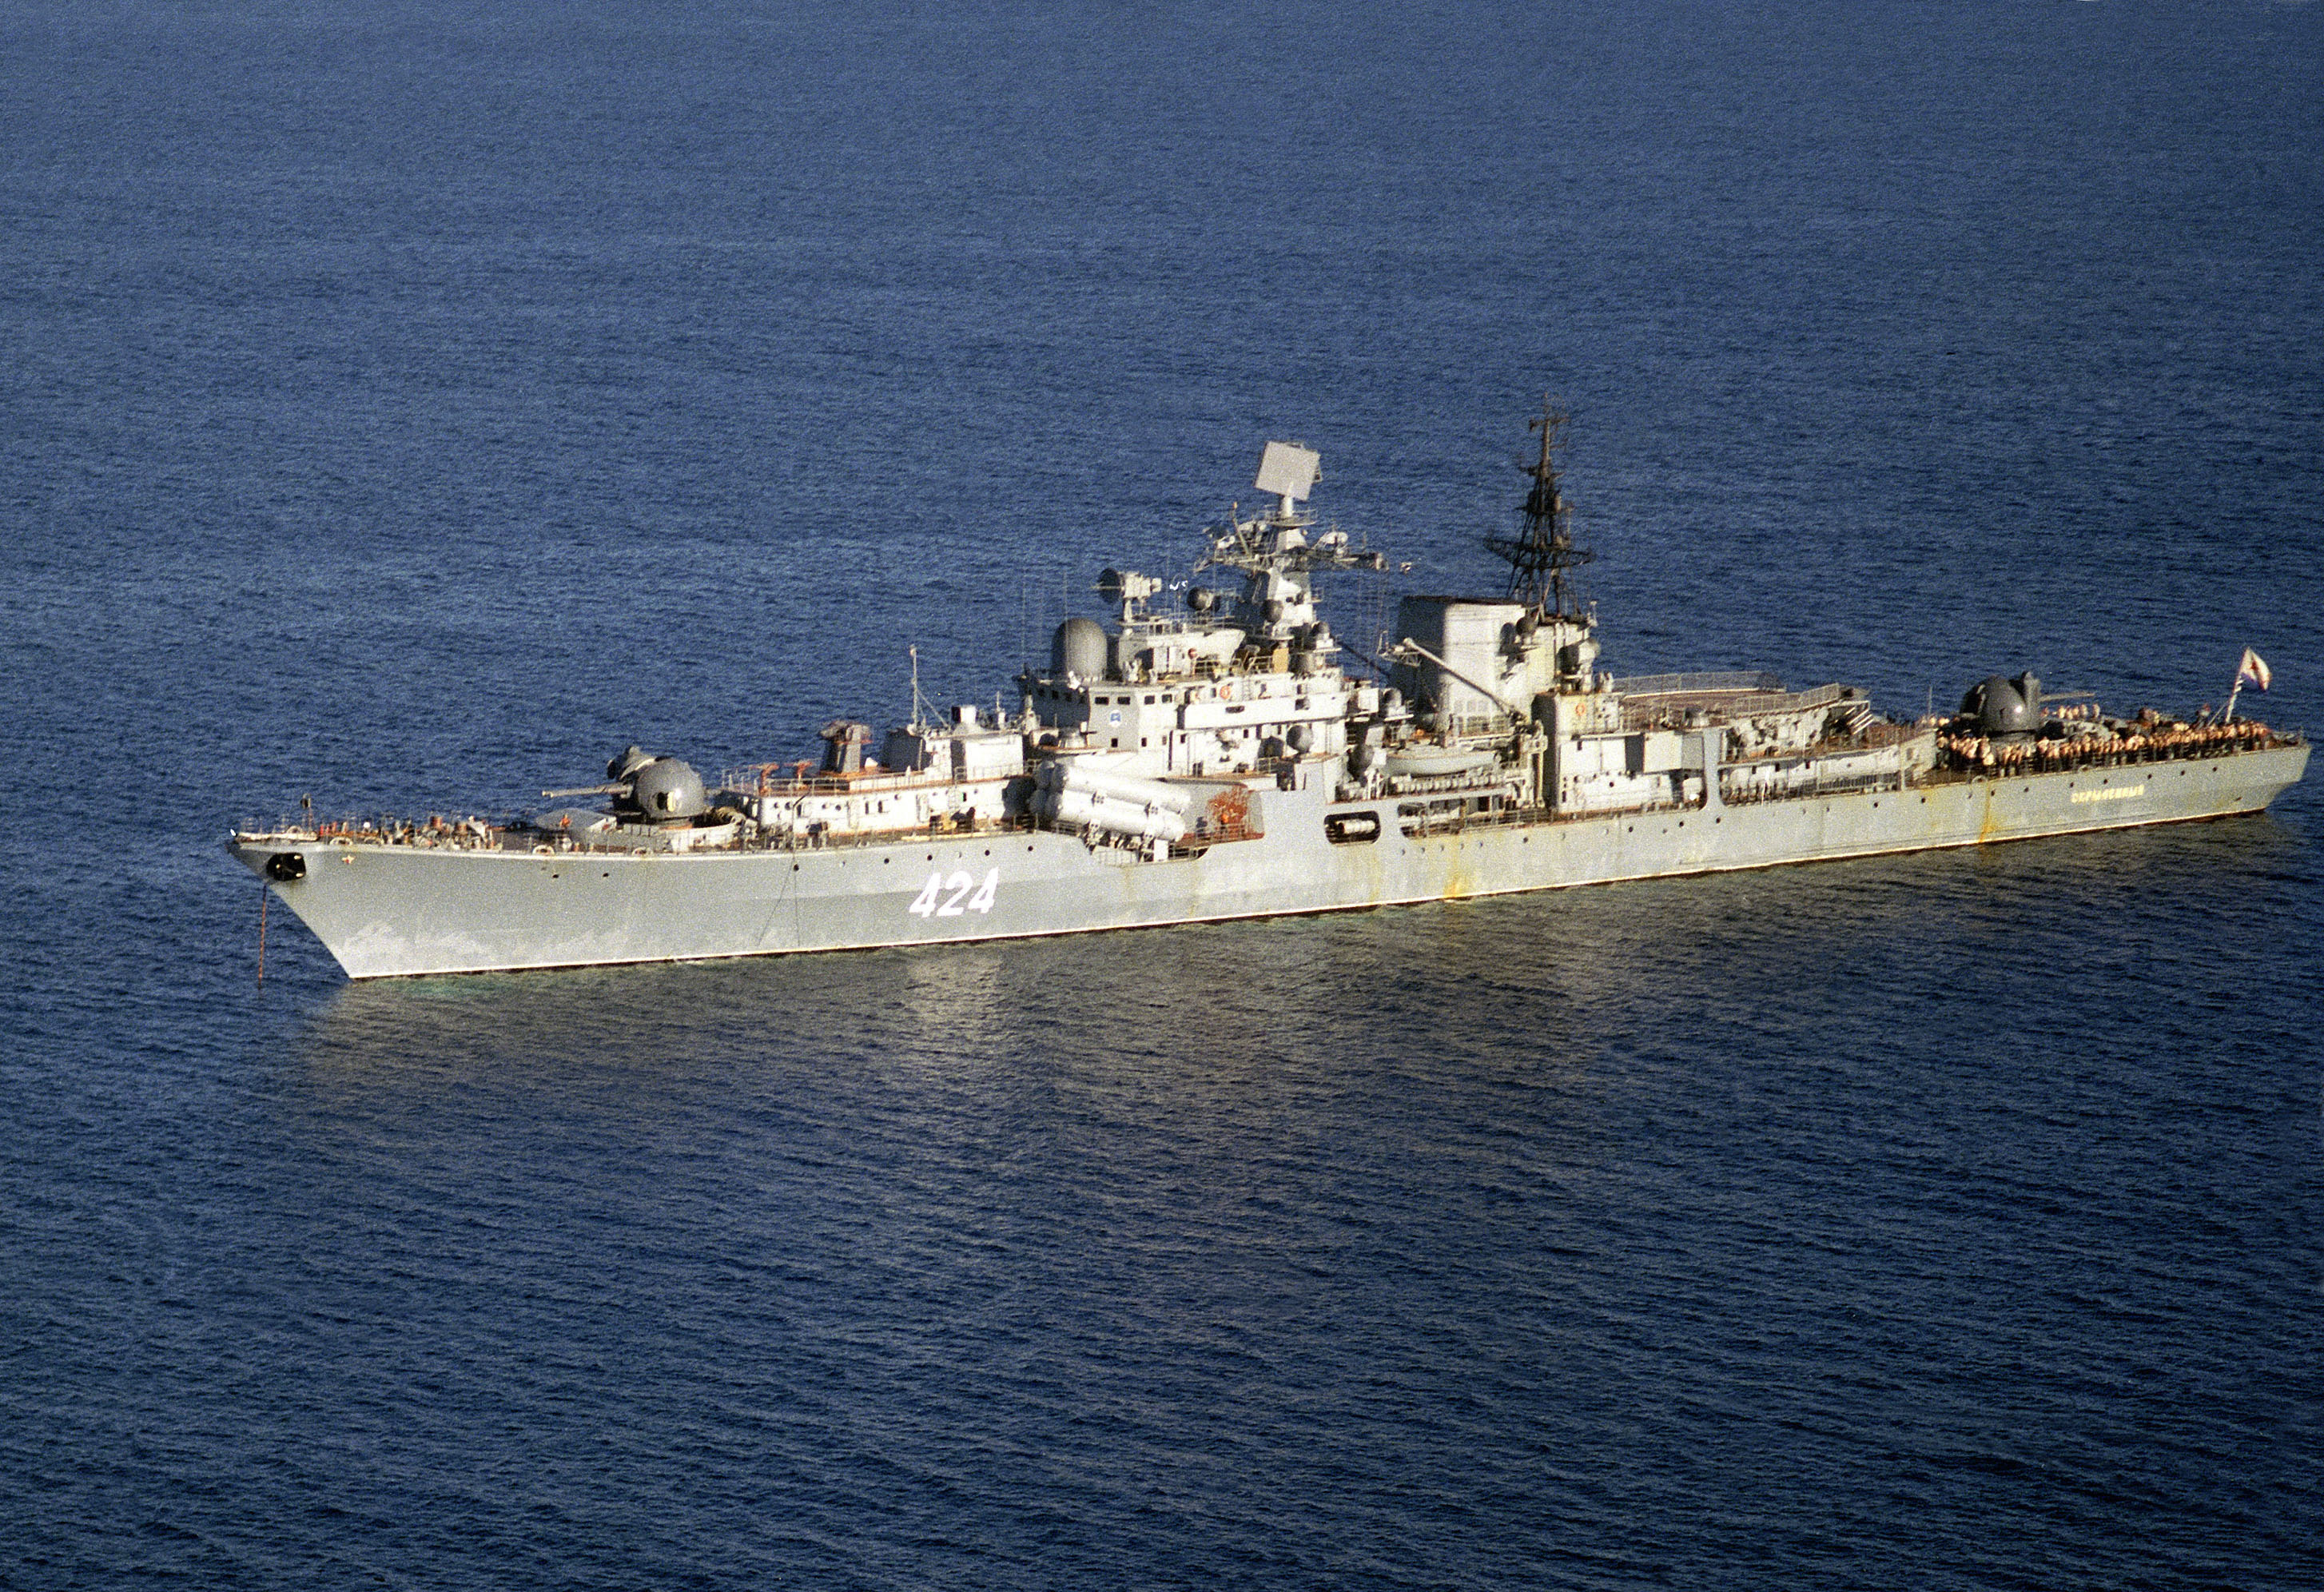 File:Destroyer Okrylenny.jpg - Wikipedia, the free encyclopedia